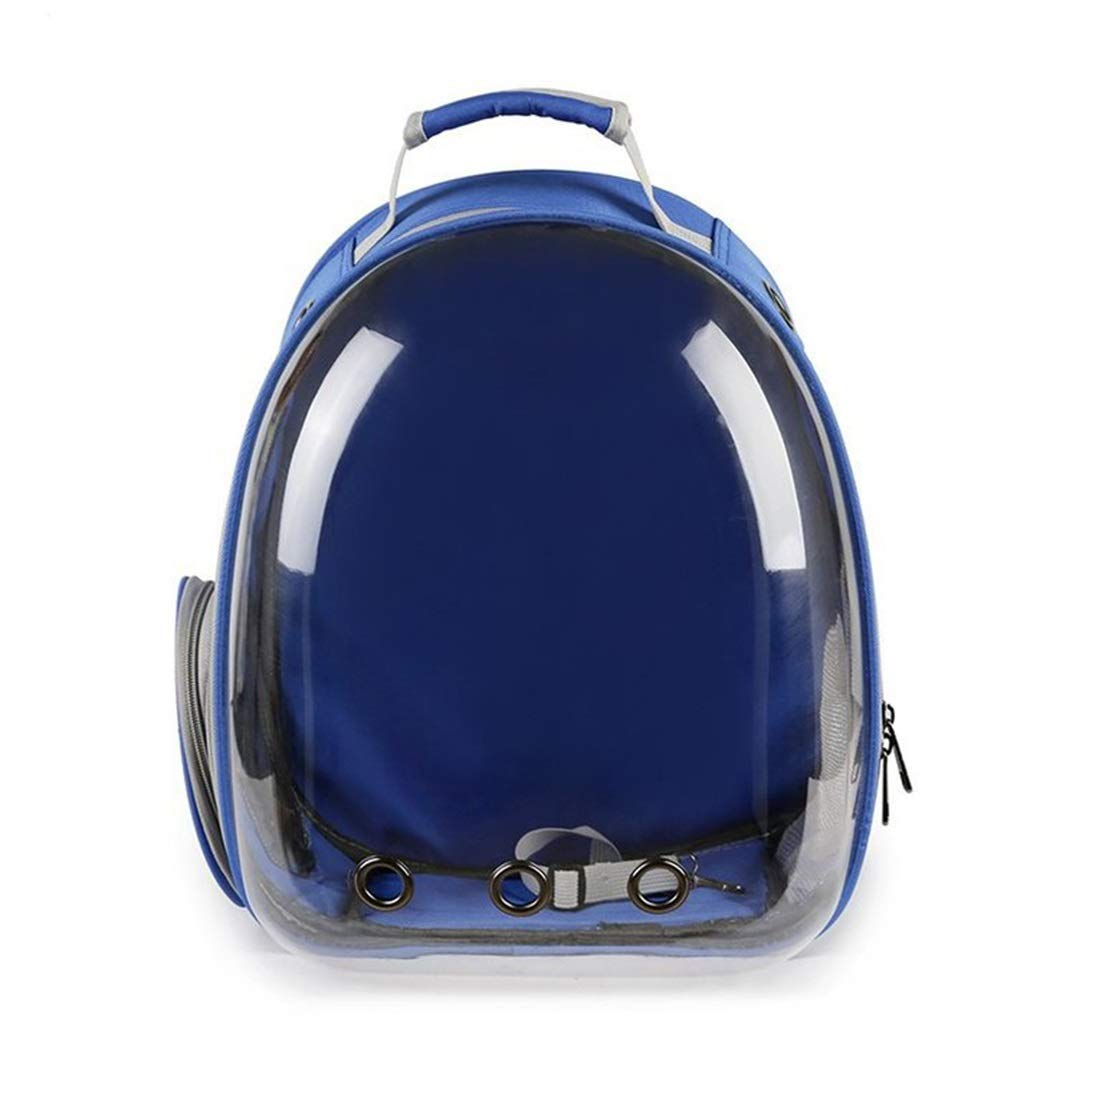 bluee 42x31x28cm bluee 42x31x28cm Zebuakuade Easy Bag Kitten And Puppy Space Capsule Backpack Large Capacity Breathable Backpack,Pet Bag (color   bluee, Size   42x31x28cm)